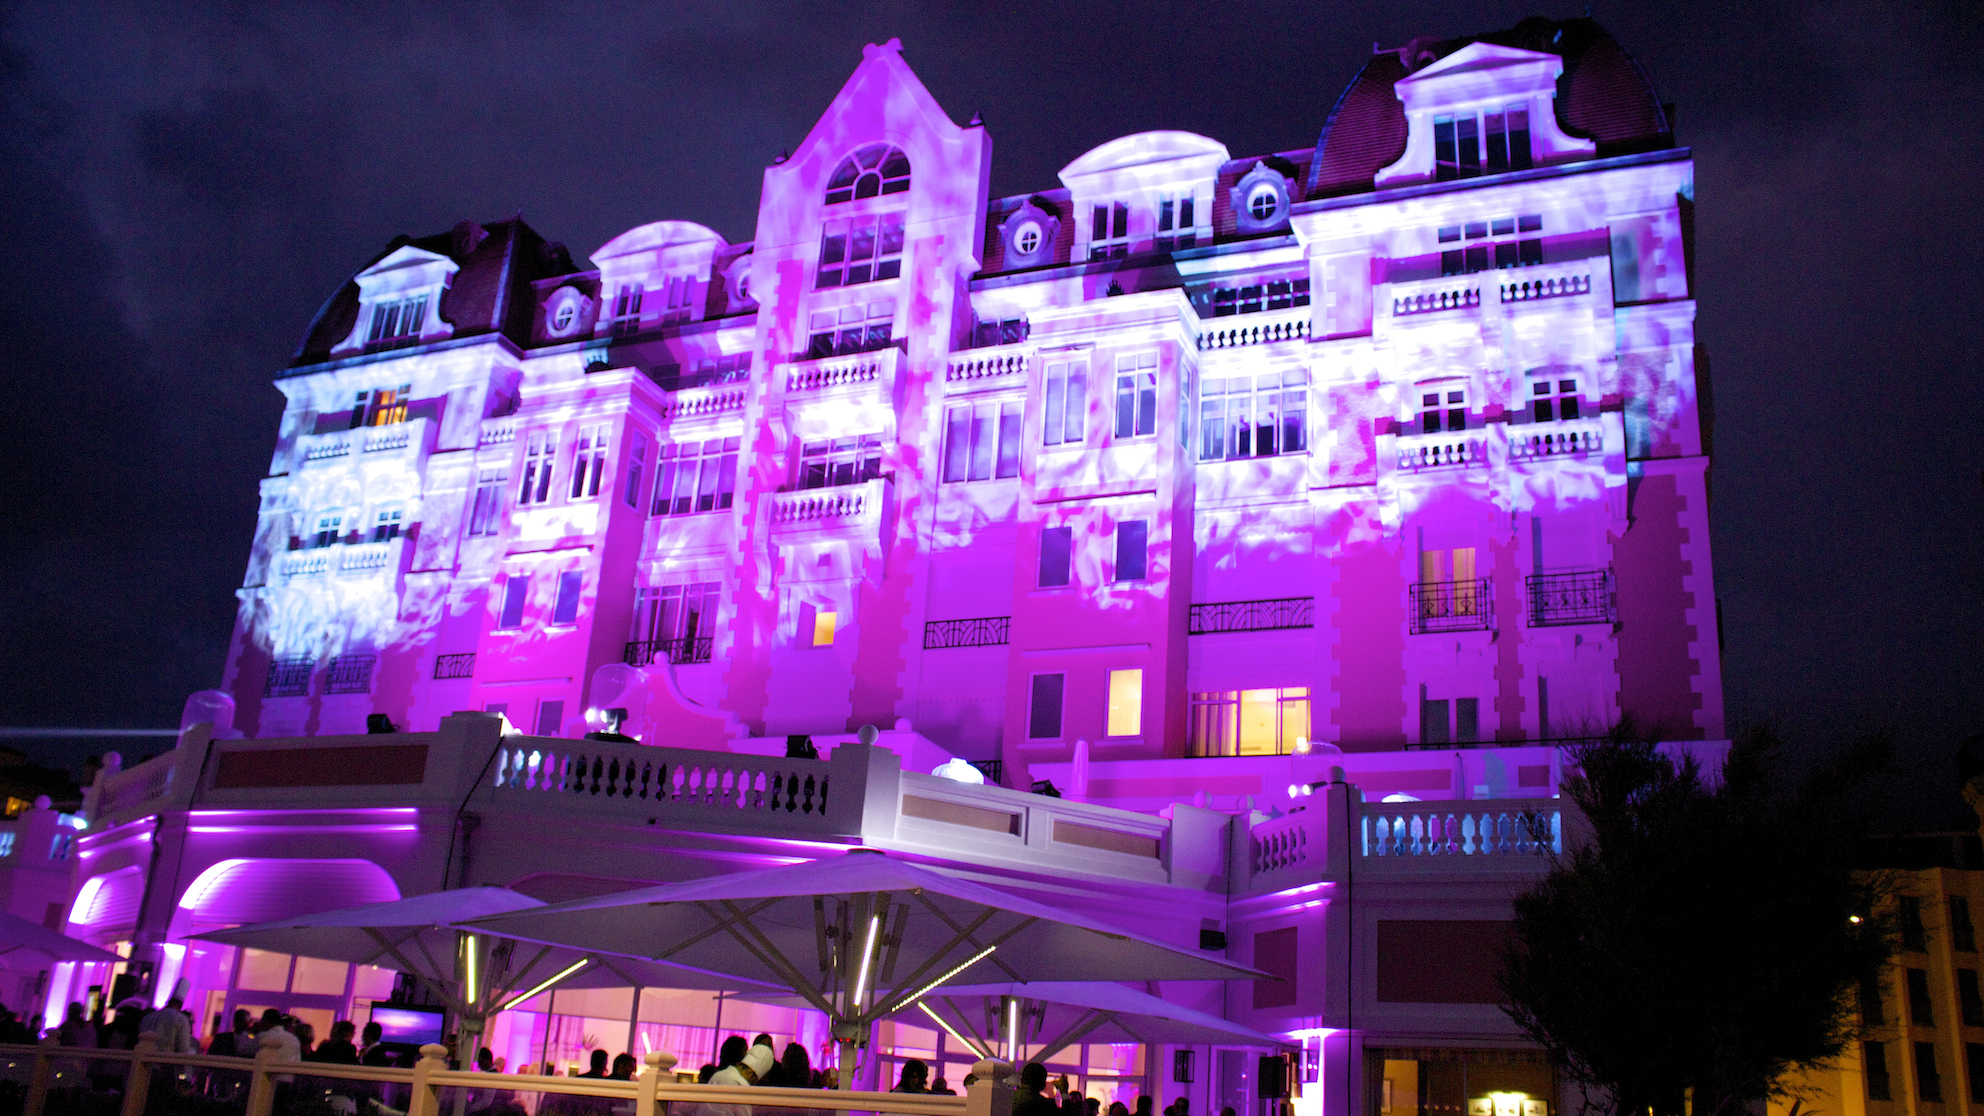 INAUGURATION-GRAND-HOTEL-saint-jean-de-luz-agence-evenementielle-pays-basque-le-cercle-evenements- 488